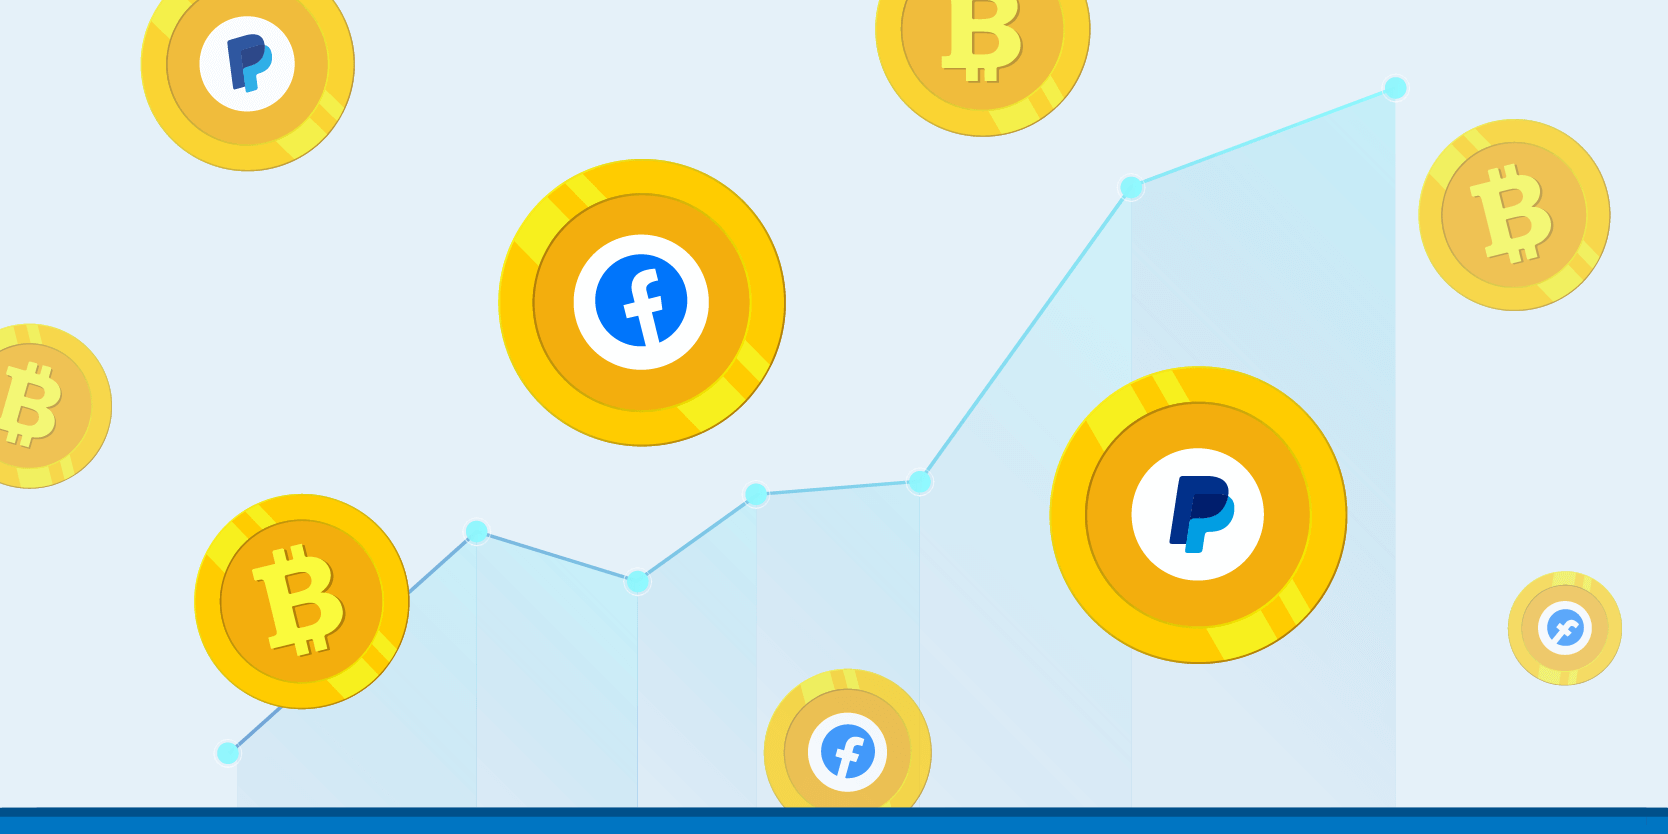 Facebook and Paypal logos on cryptocurrency